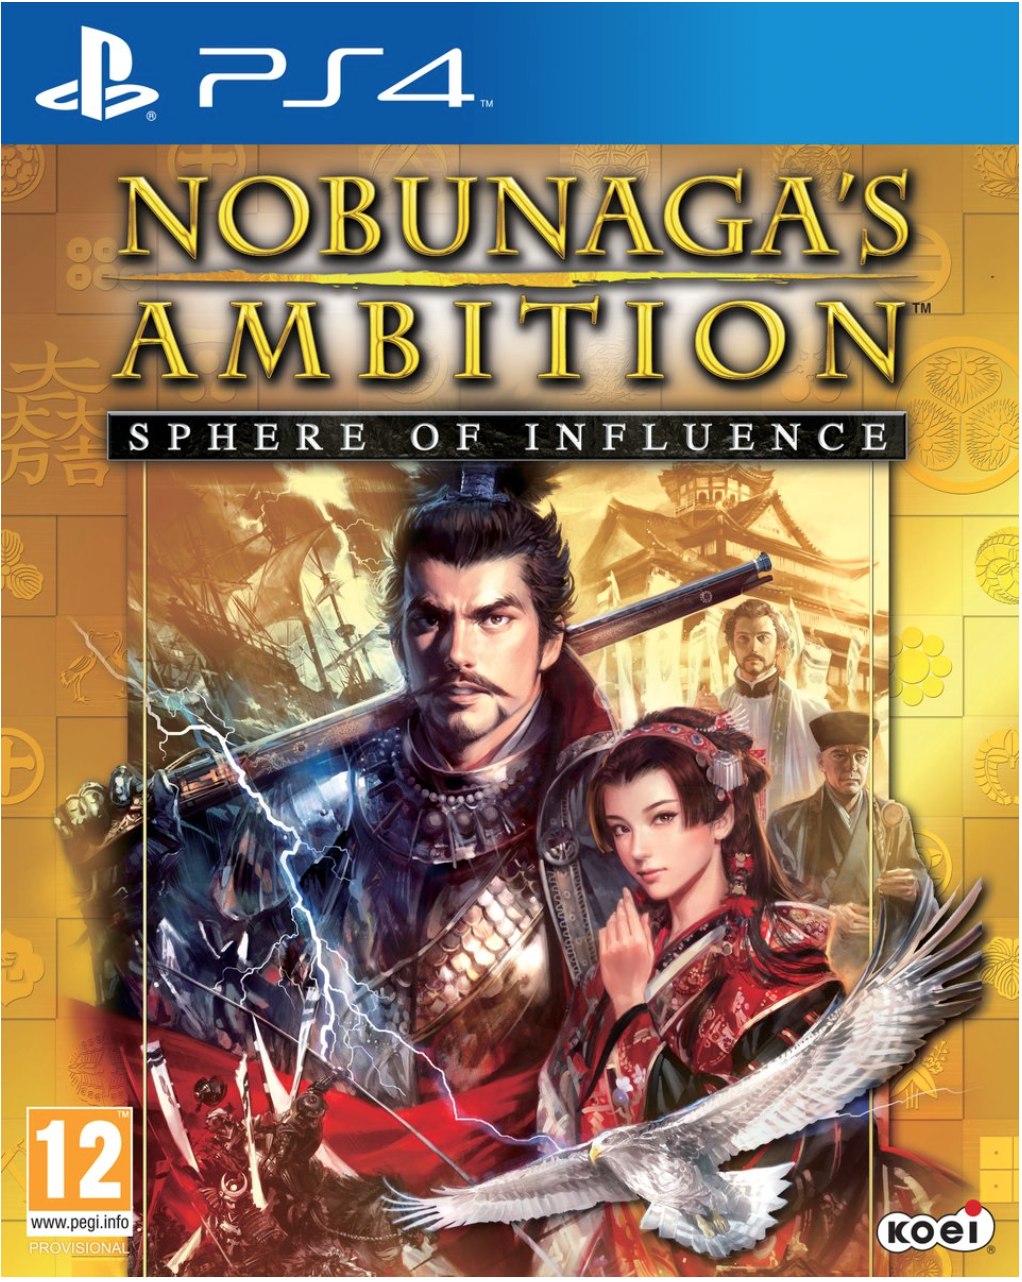 Boxart van Nobunaga's Ambition: Sphere of Influence (PS4), Koei